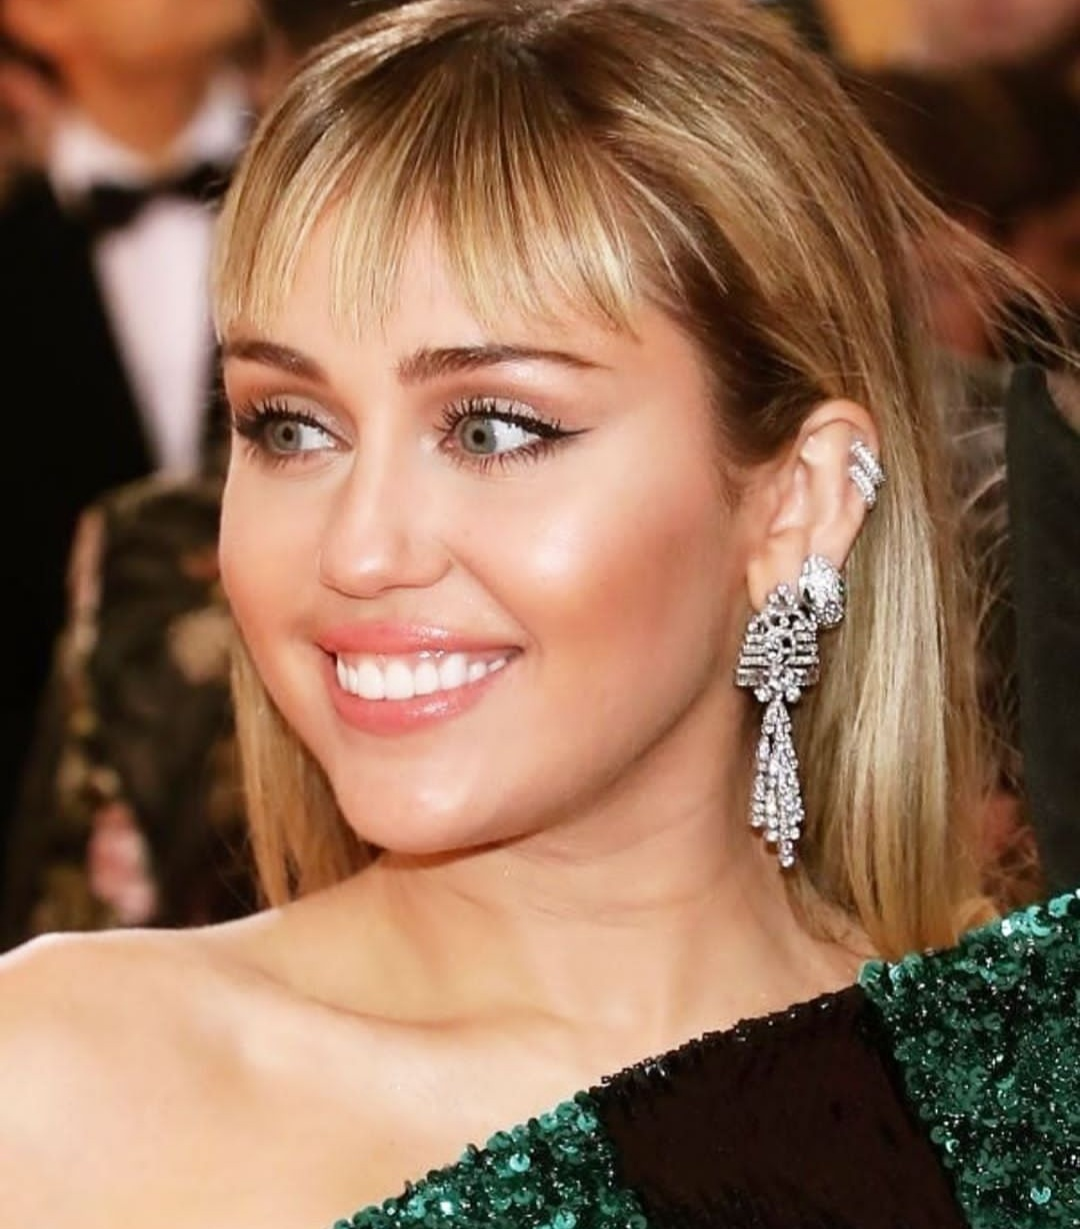 Video Of Miley Cyrus Where A Fan Forcibly Tries To Kiss Her Went Viral